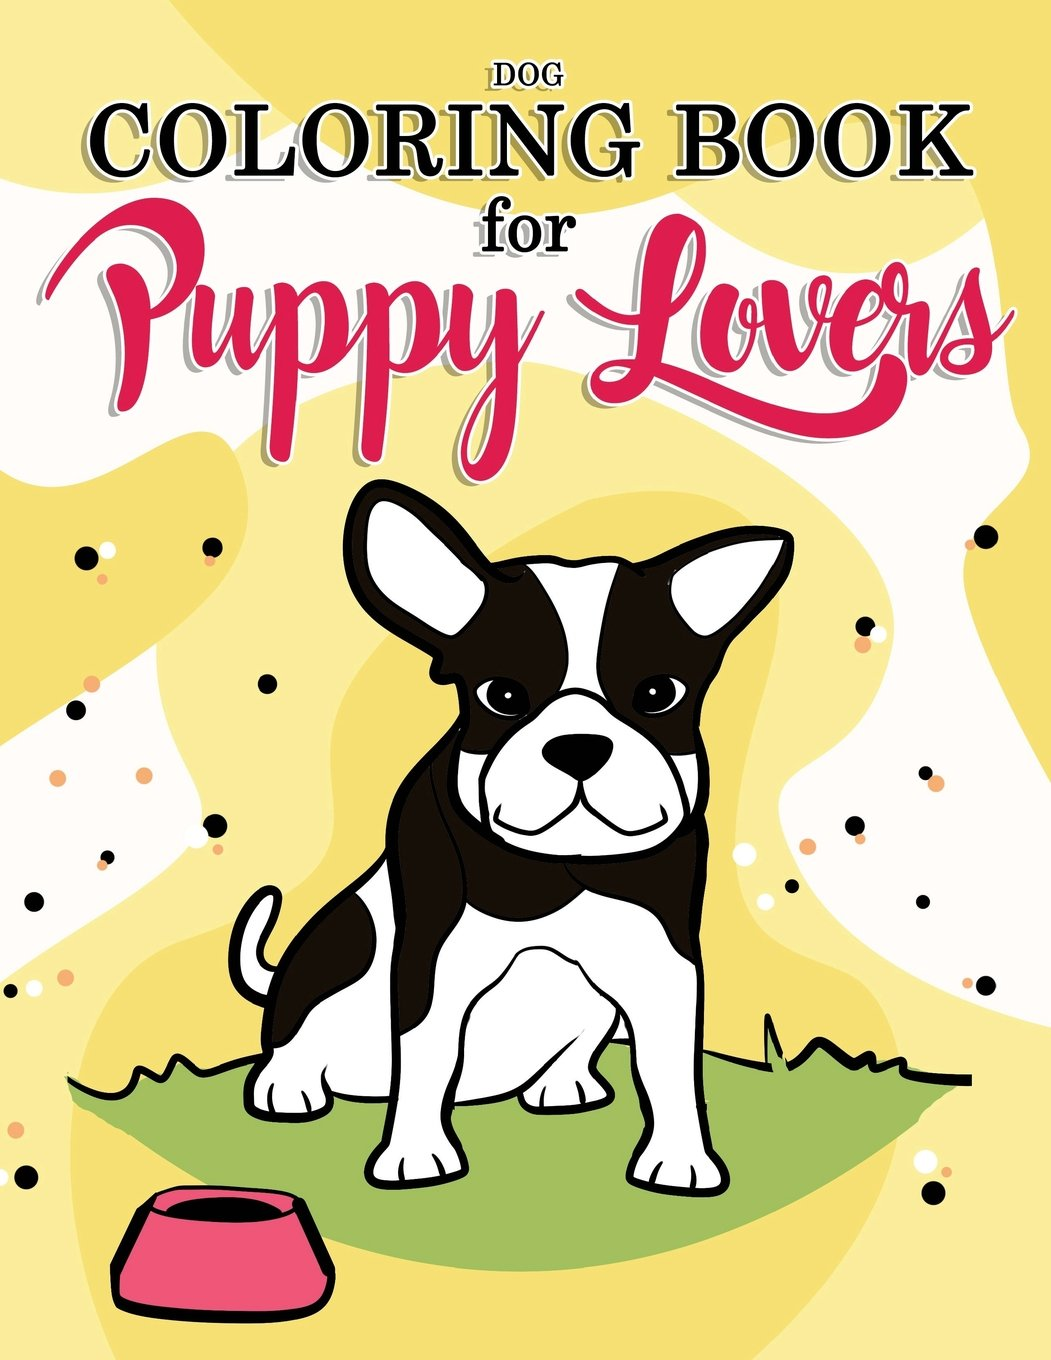 Read Online Dog Coloring Book for Puppy Lovers: Really Relaxing Animal Coloring Pages for Girls and Boys (Dog Coloring Books for Kids Ages 8-12) (Volume 1) ebook